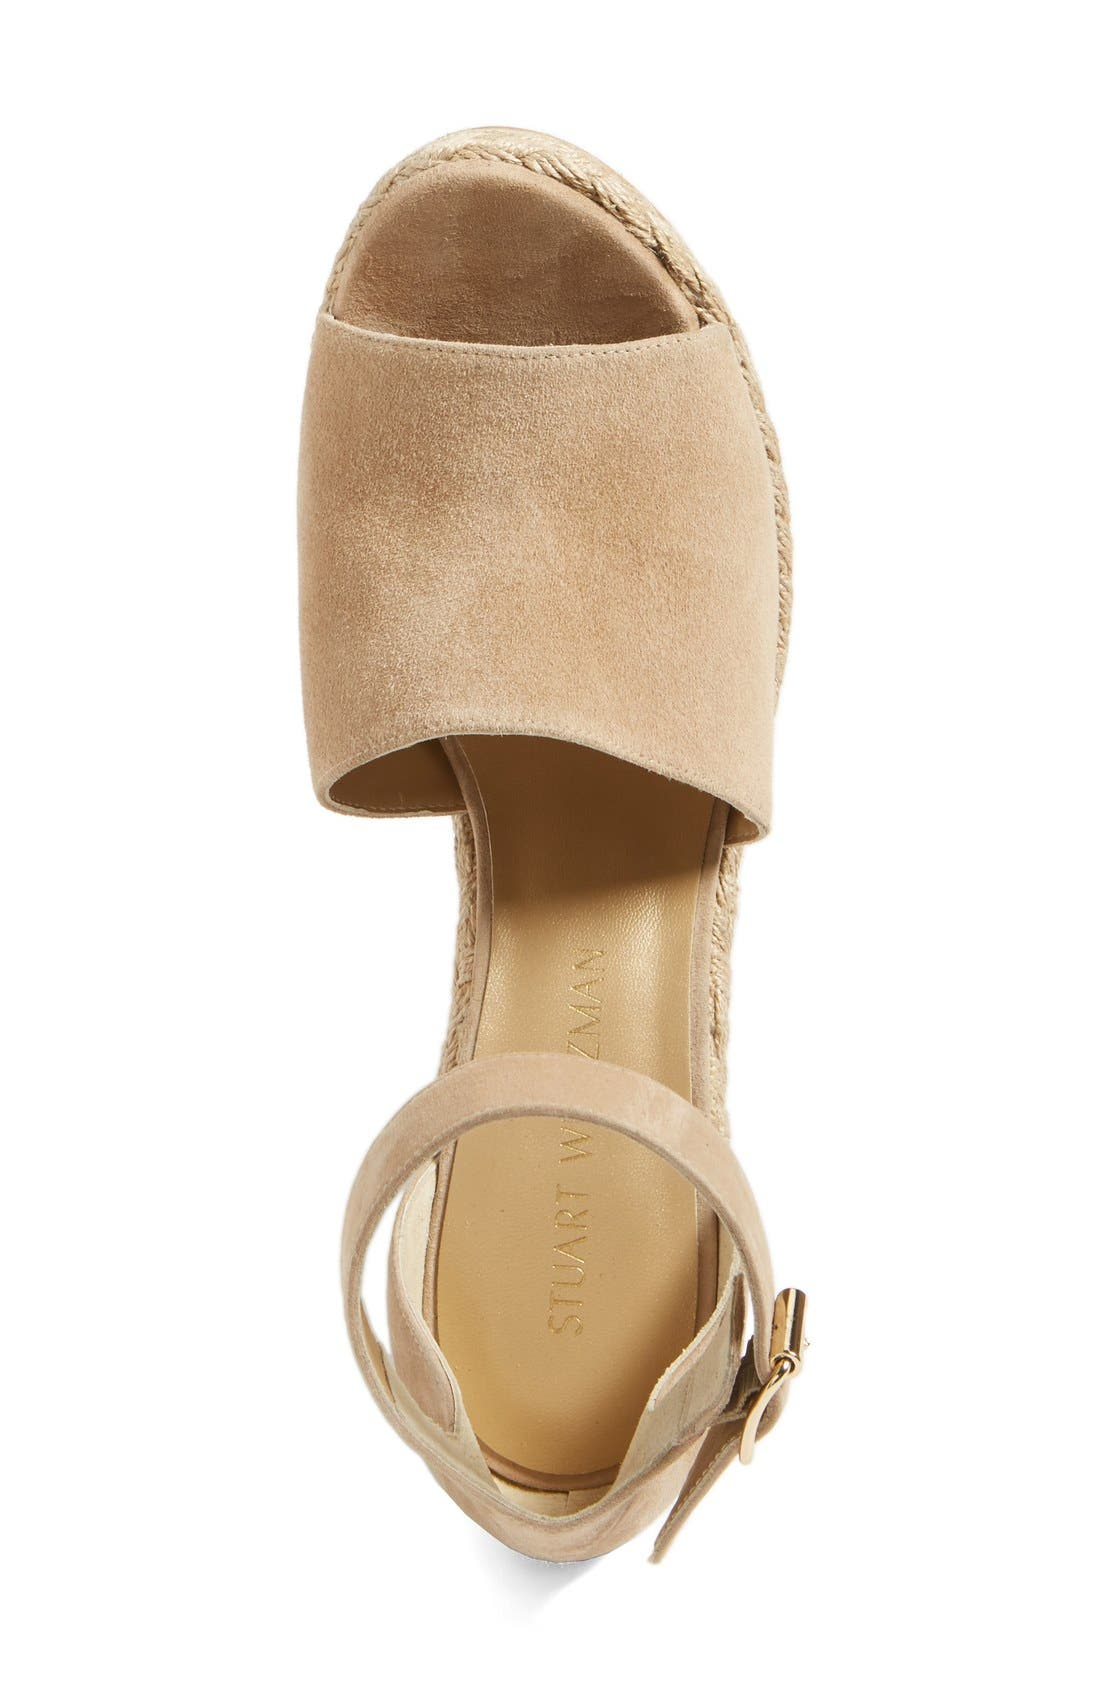 Sohojute Platform Wedge Sandal,                             Alternate thumbnail 3, color,                             Mojave Suede